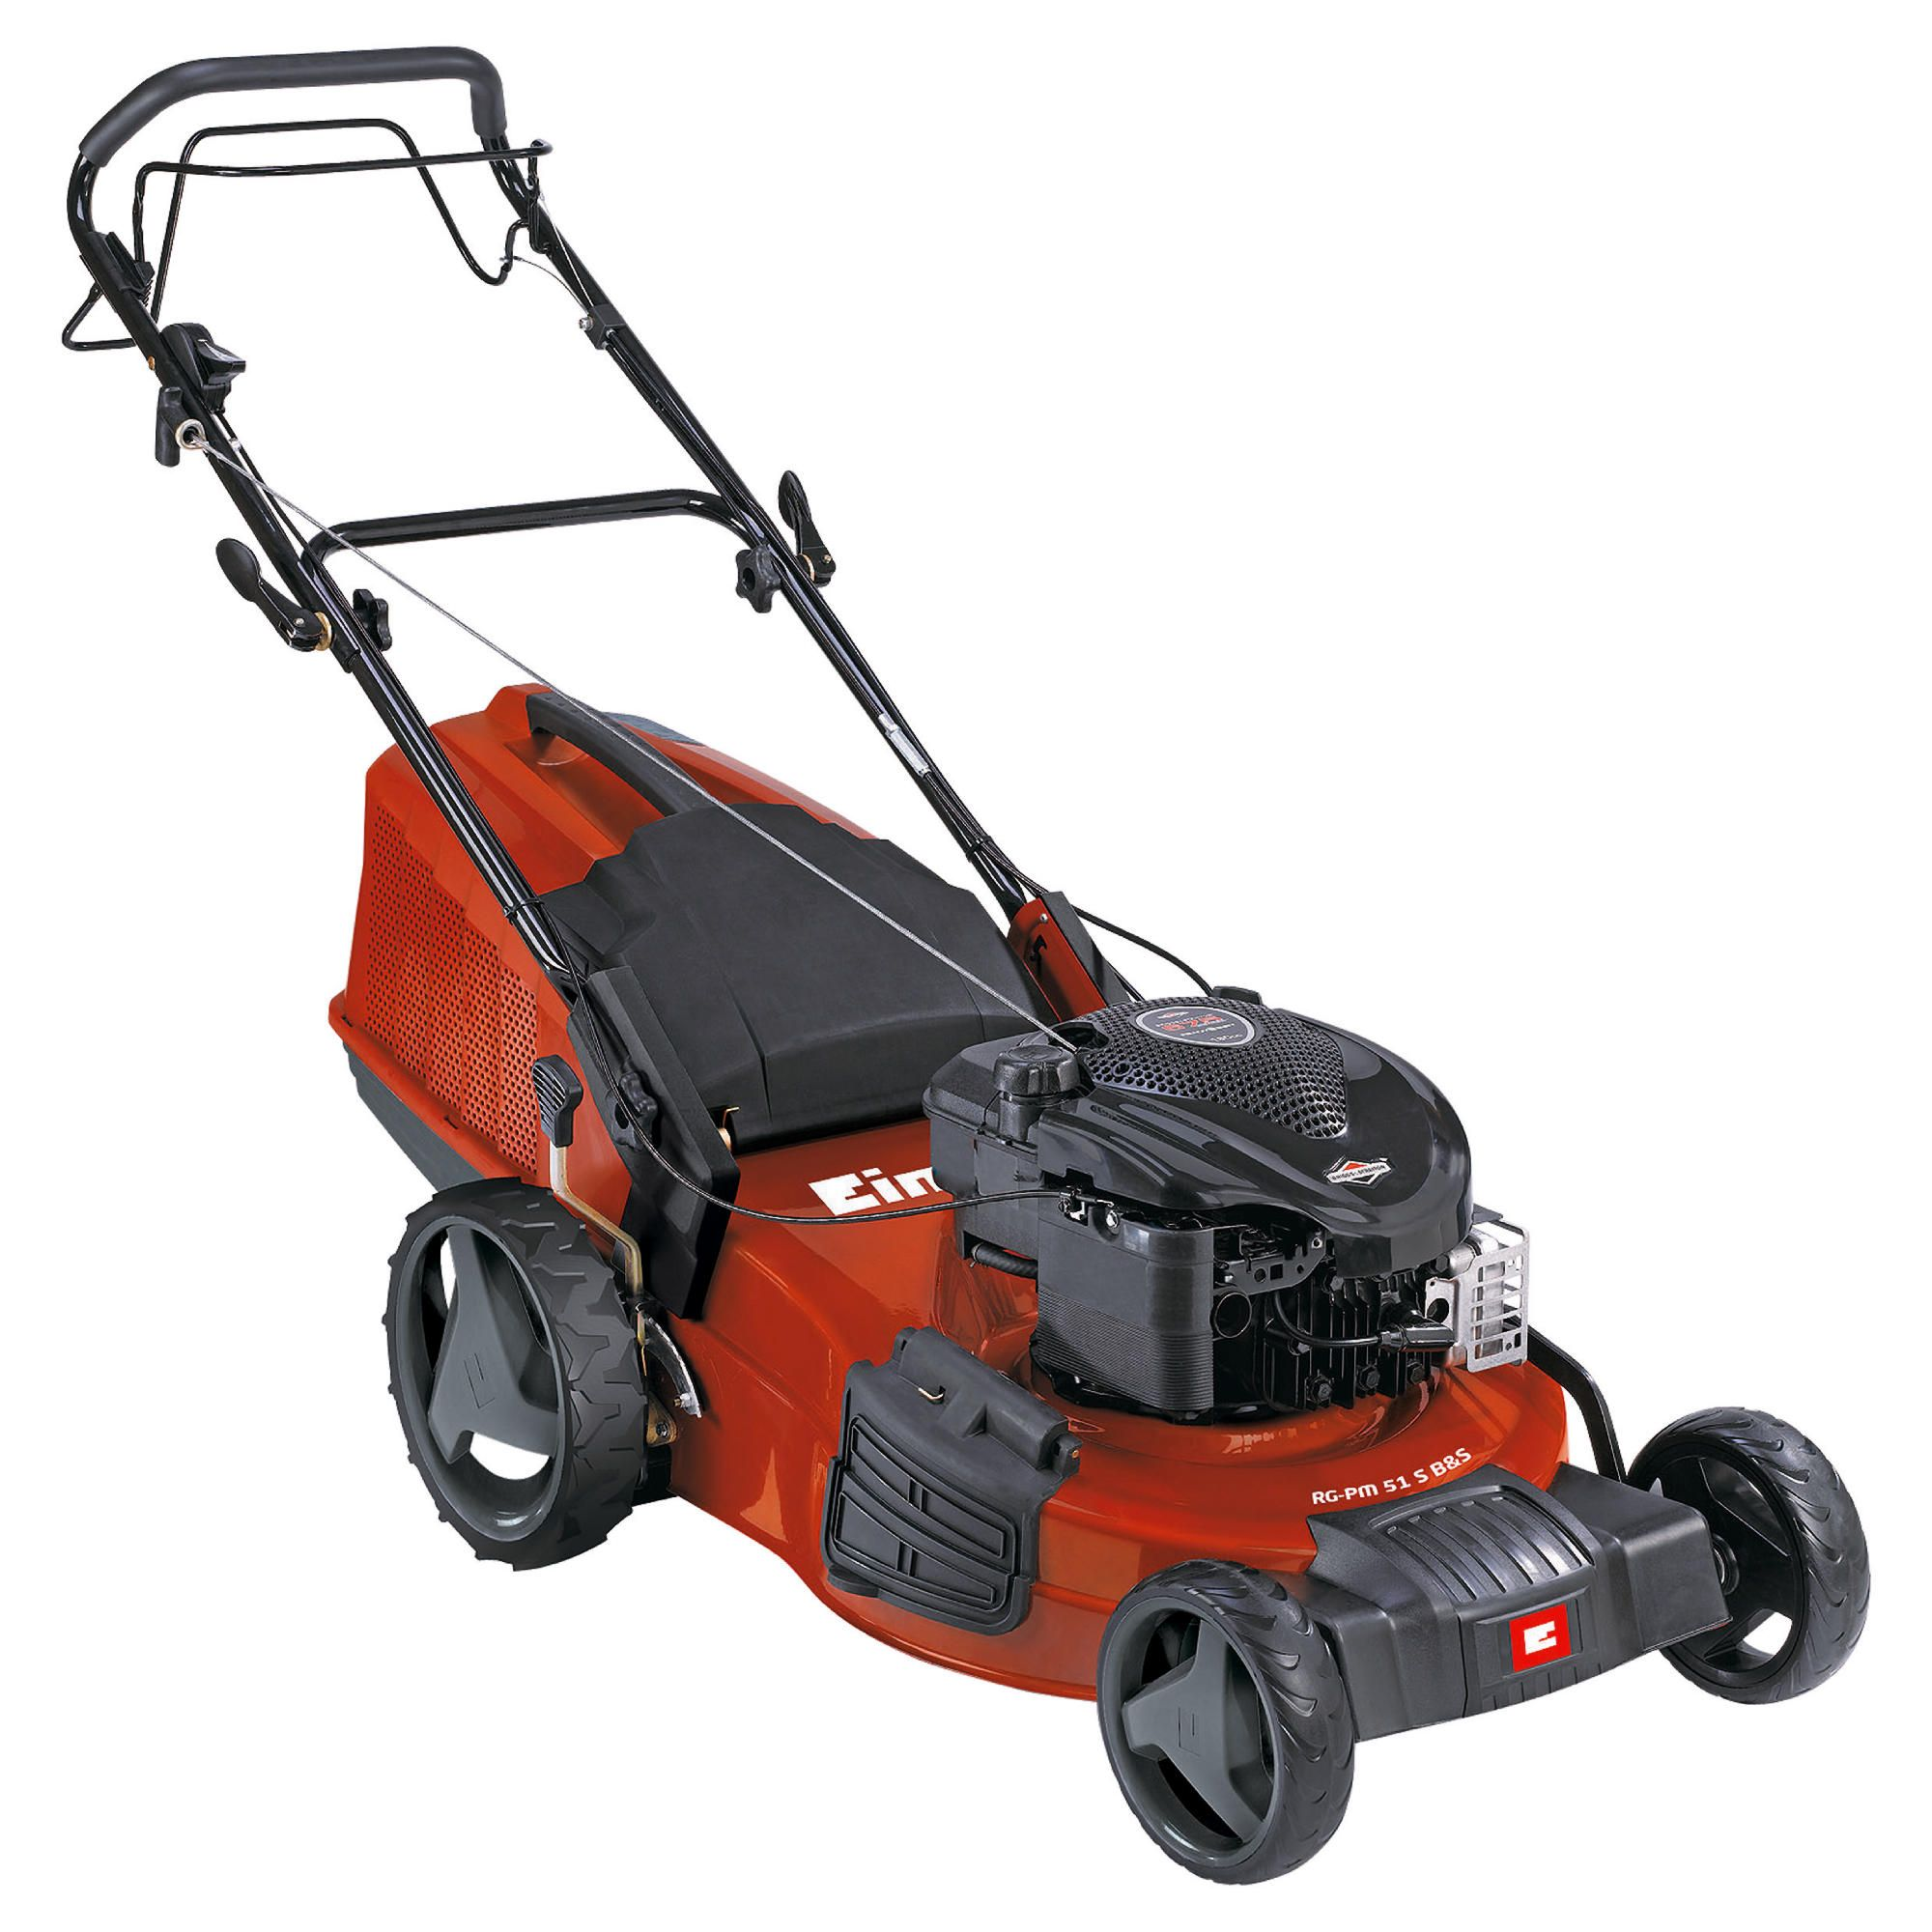 Einhell RG-PM 51s Self Propelled Lawnmower at Tesco Direct